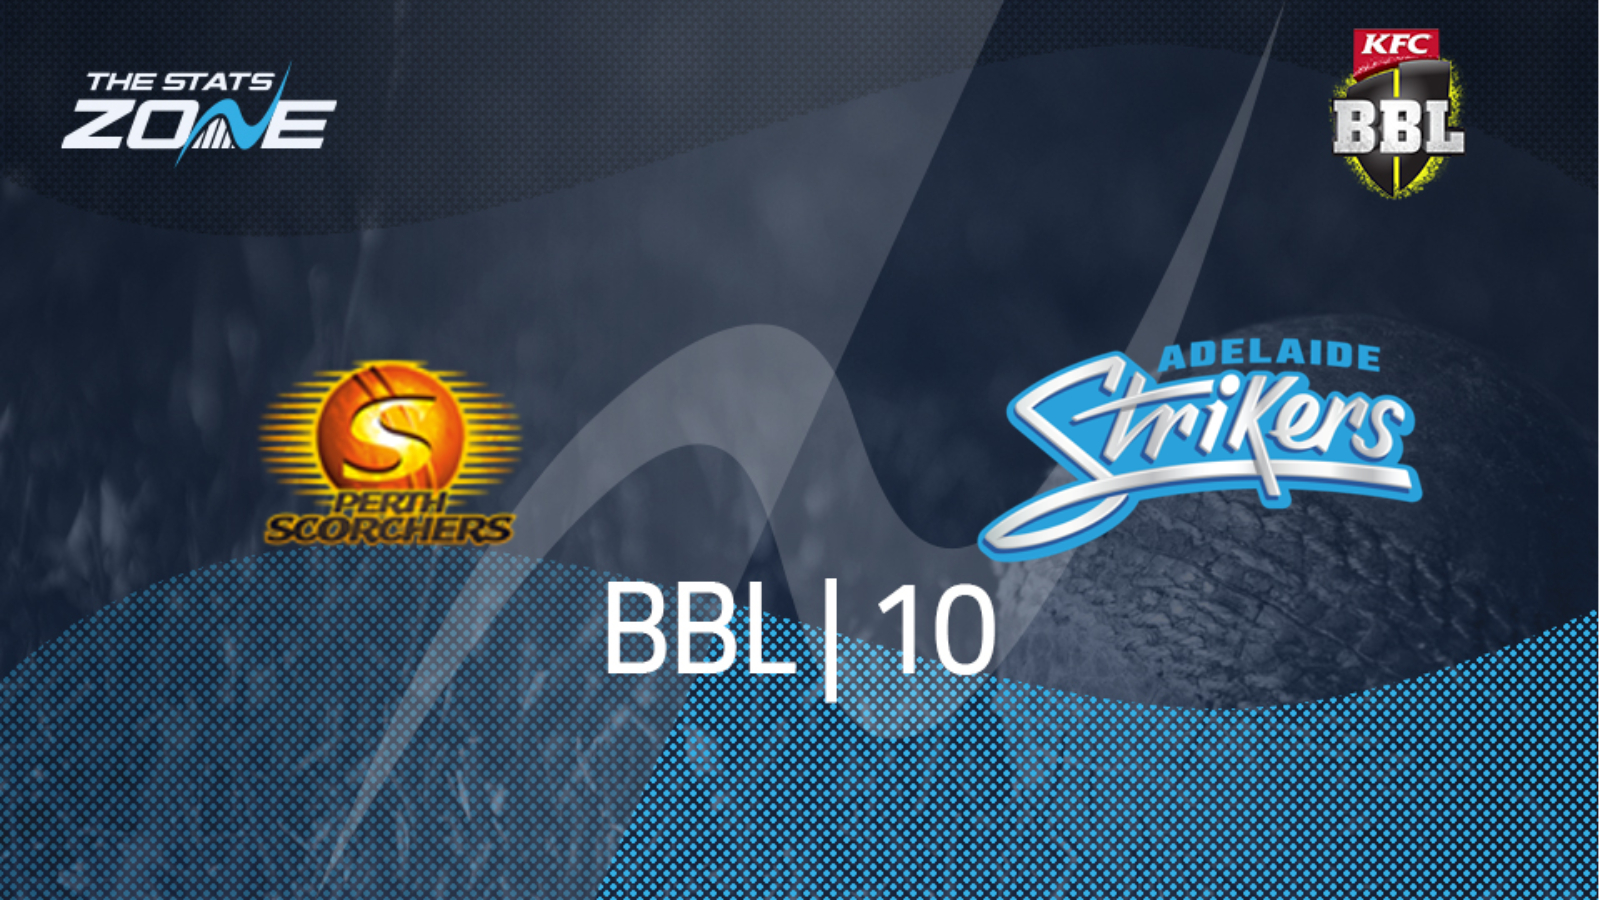 Adelaide strikers vs perth scorchers betting preview nfl how to set up your computer to mine bitcoins